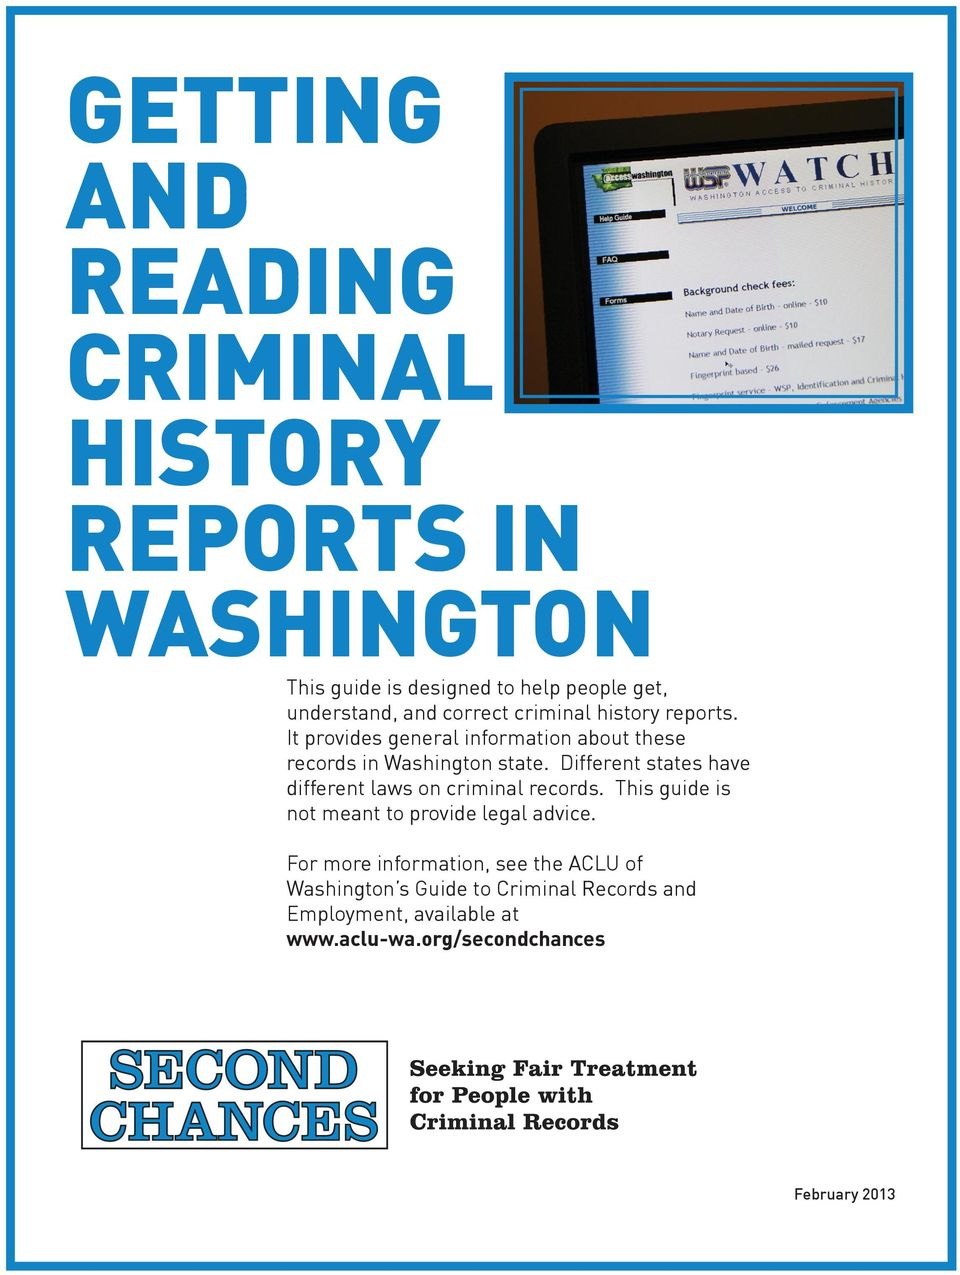 Different states have different laws on criminal records. This guide is not meant to provide legal advice.